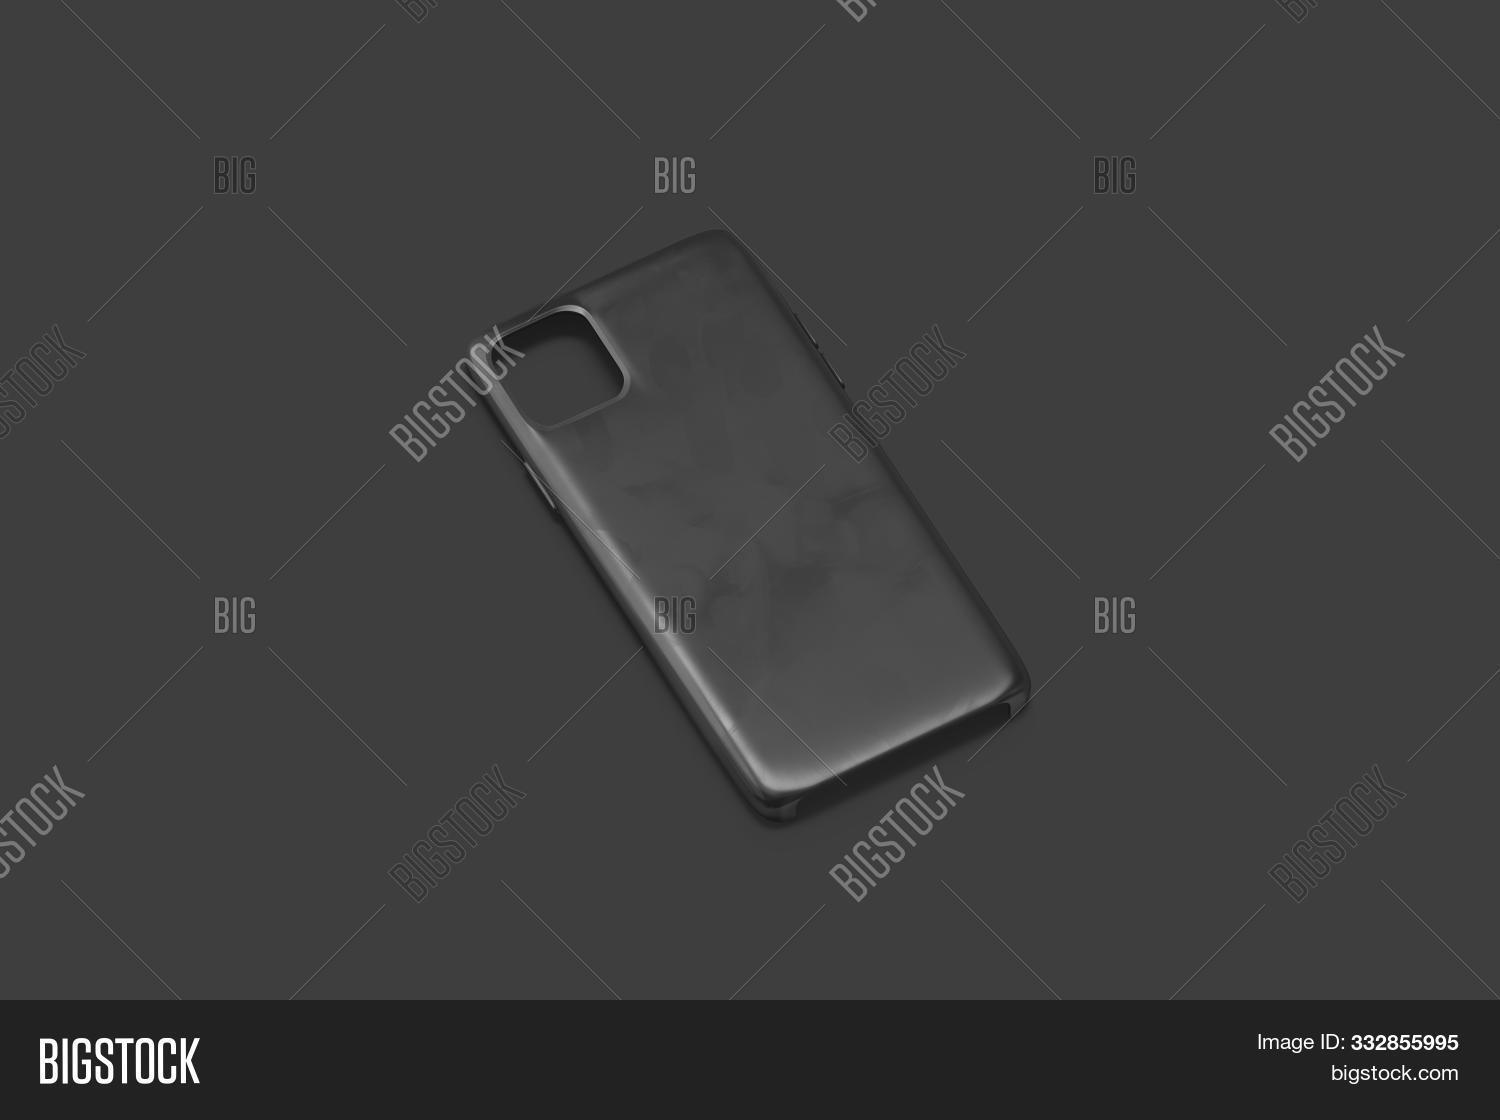 11,3d,accesory,accessory,acessory,apple,black,blank,bumper,case,casing,container,cover,covering,dark,digital,dustcover,empty,gadget,gray,hood,isolated,jacket,logo,matt,matte,mock,mockup,mokcup,new,phone,plastic,pro,protect,protection,protective,protector,rendering,screen,silicon,silicone,silikon,slim,slipcover,smart,smartphone,up